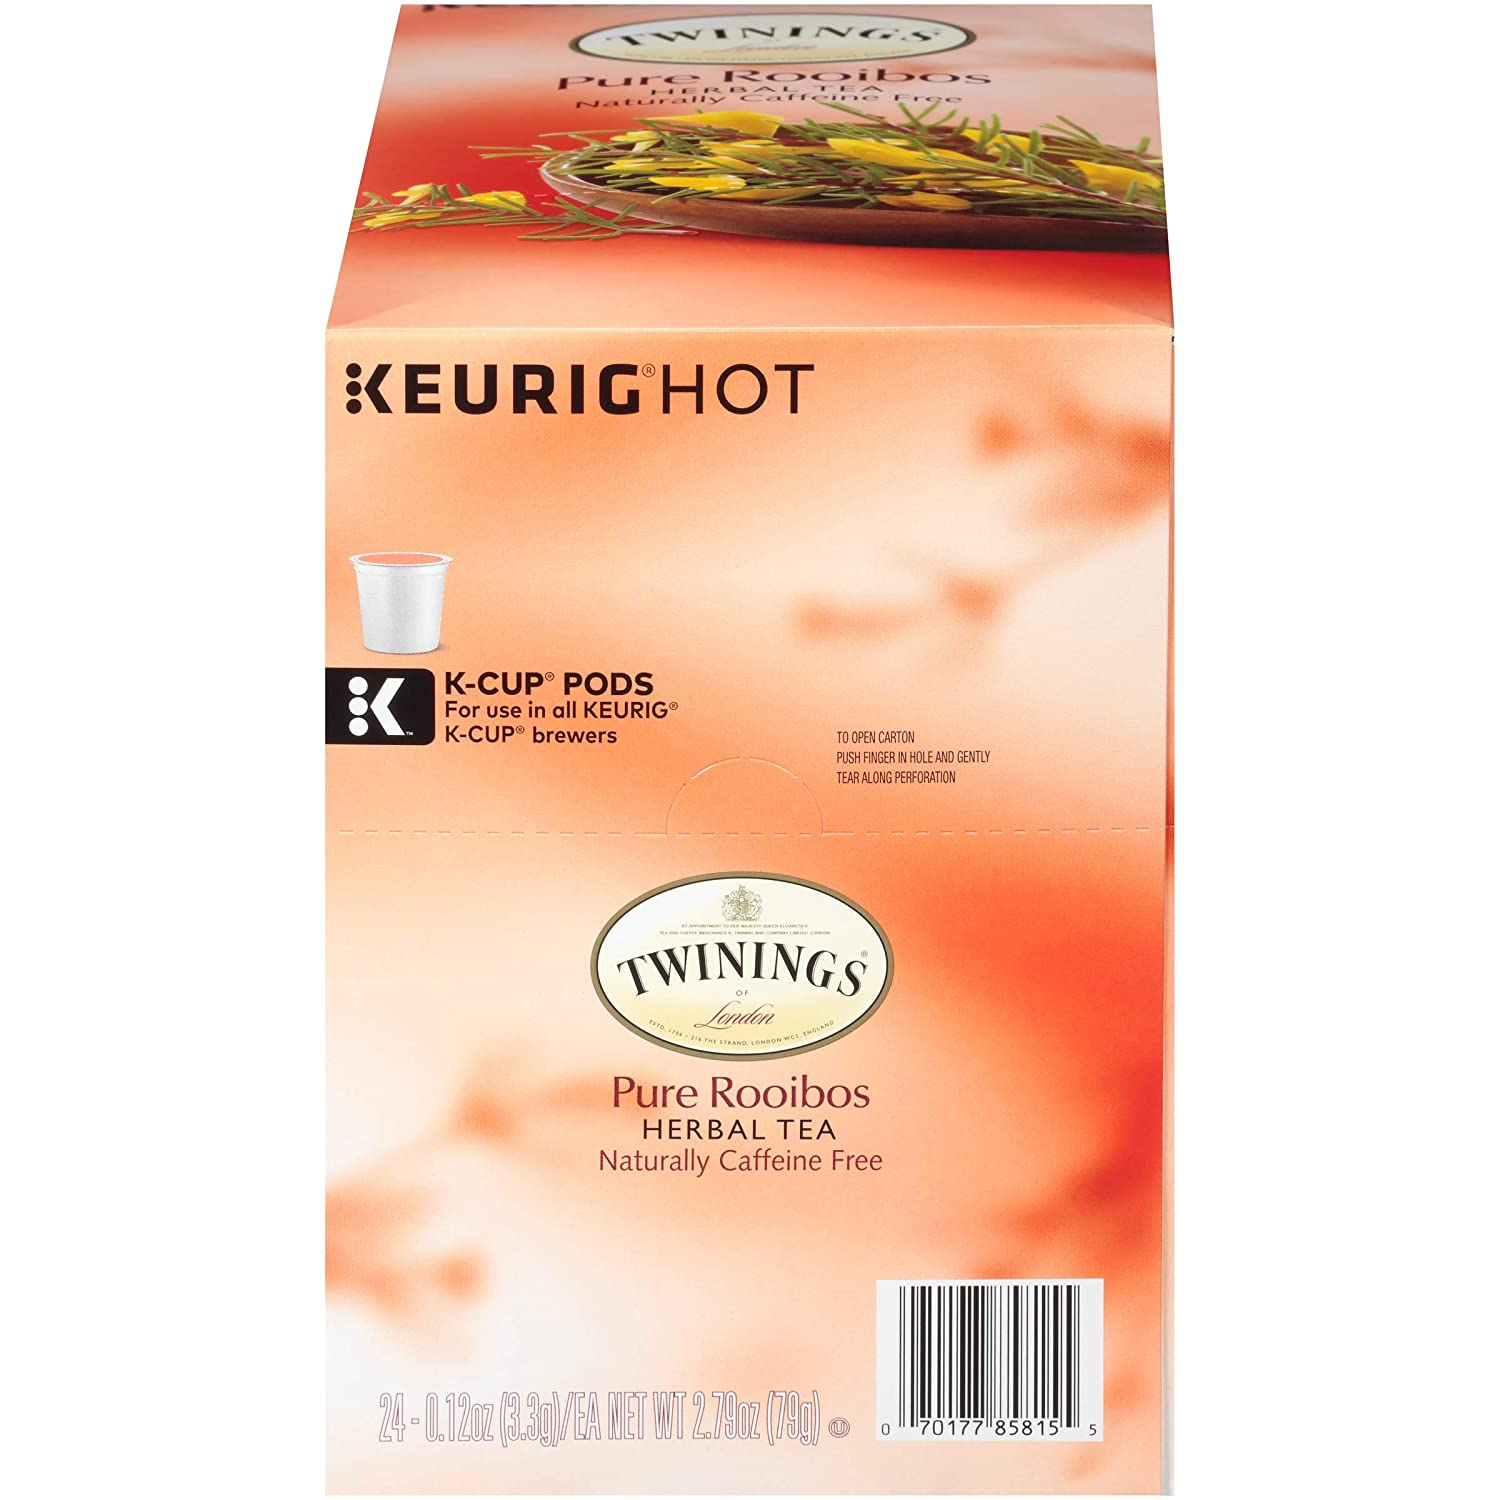 Twinings of London Pure Rooibos Herbal Tea K-Cups for Keurig, 24 Count